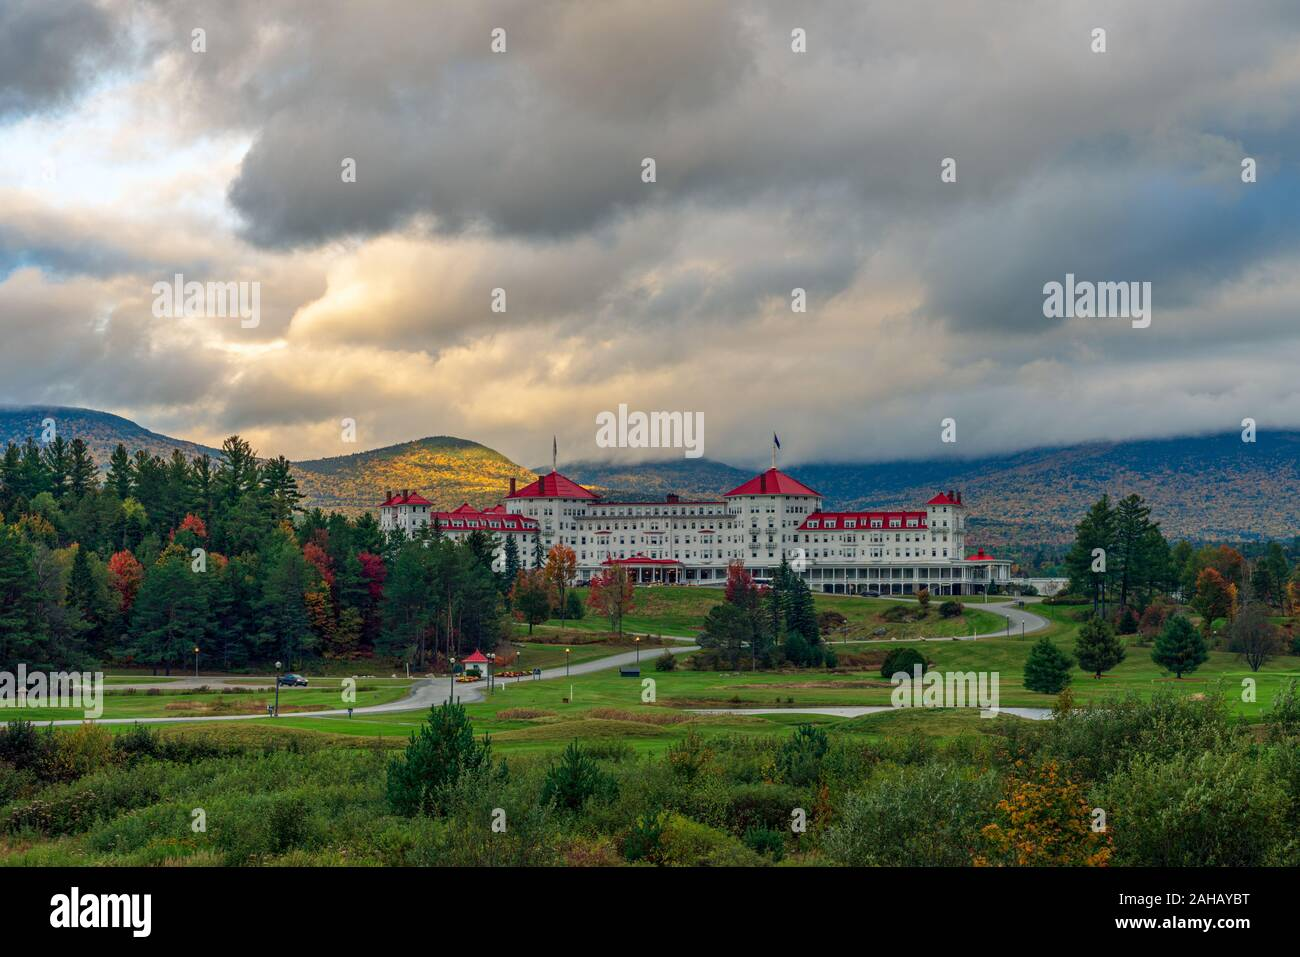 A break in the clouds allows golden sunlight to illuminate the mountside behind the iconic Mount Washington Hotel. Stock Photo